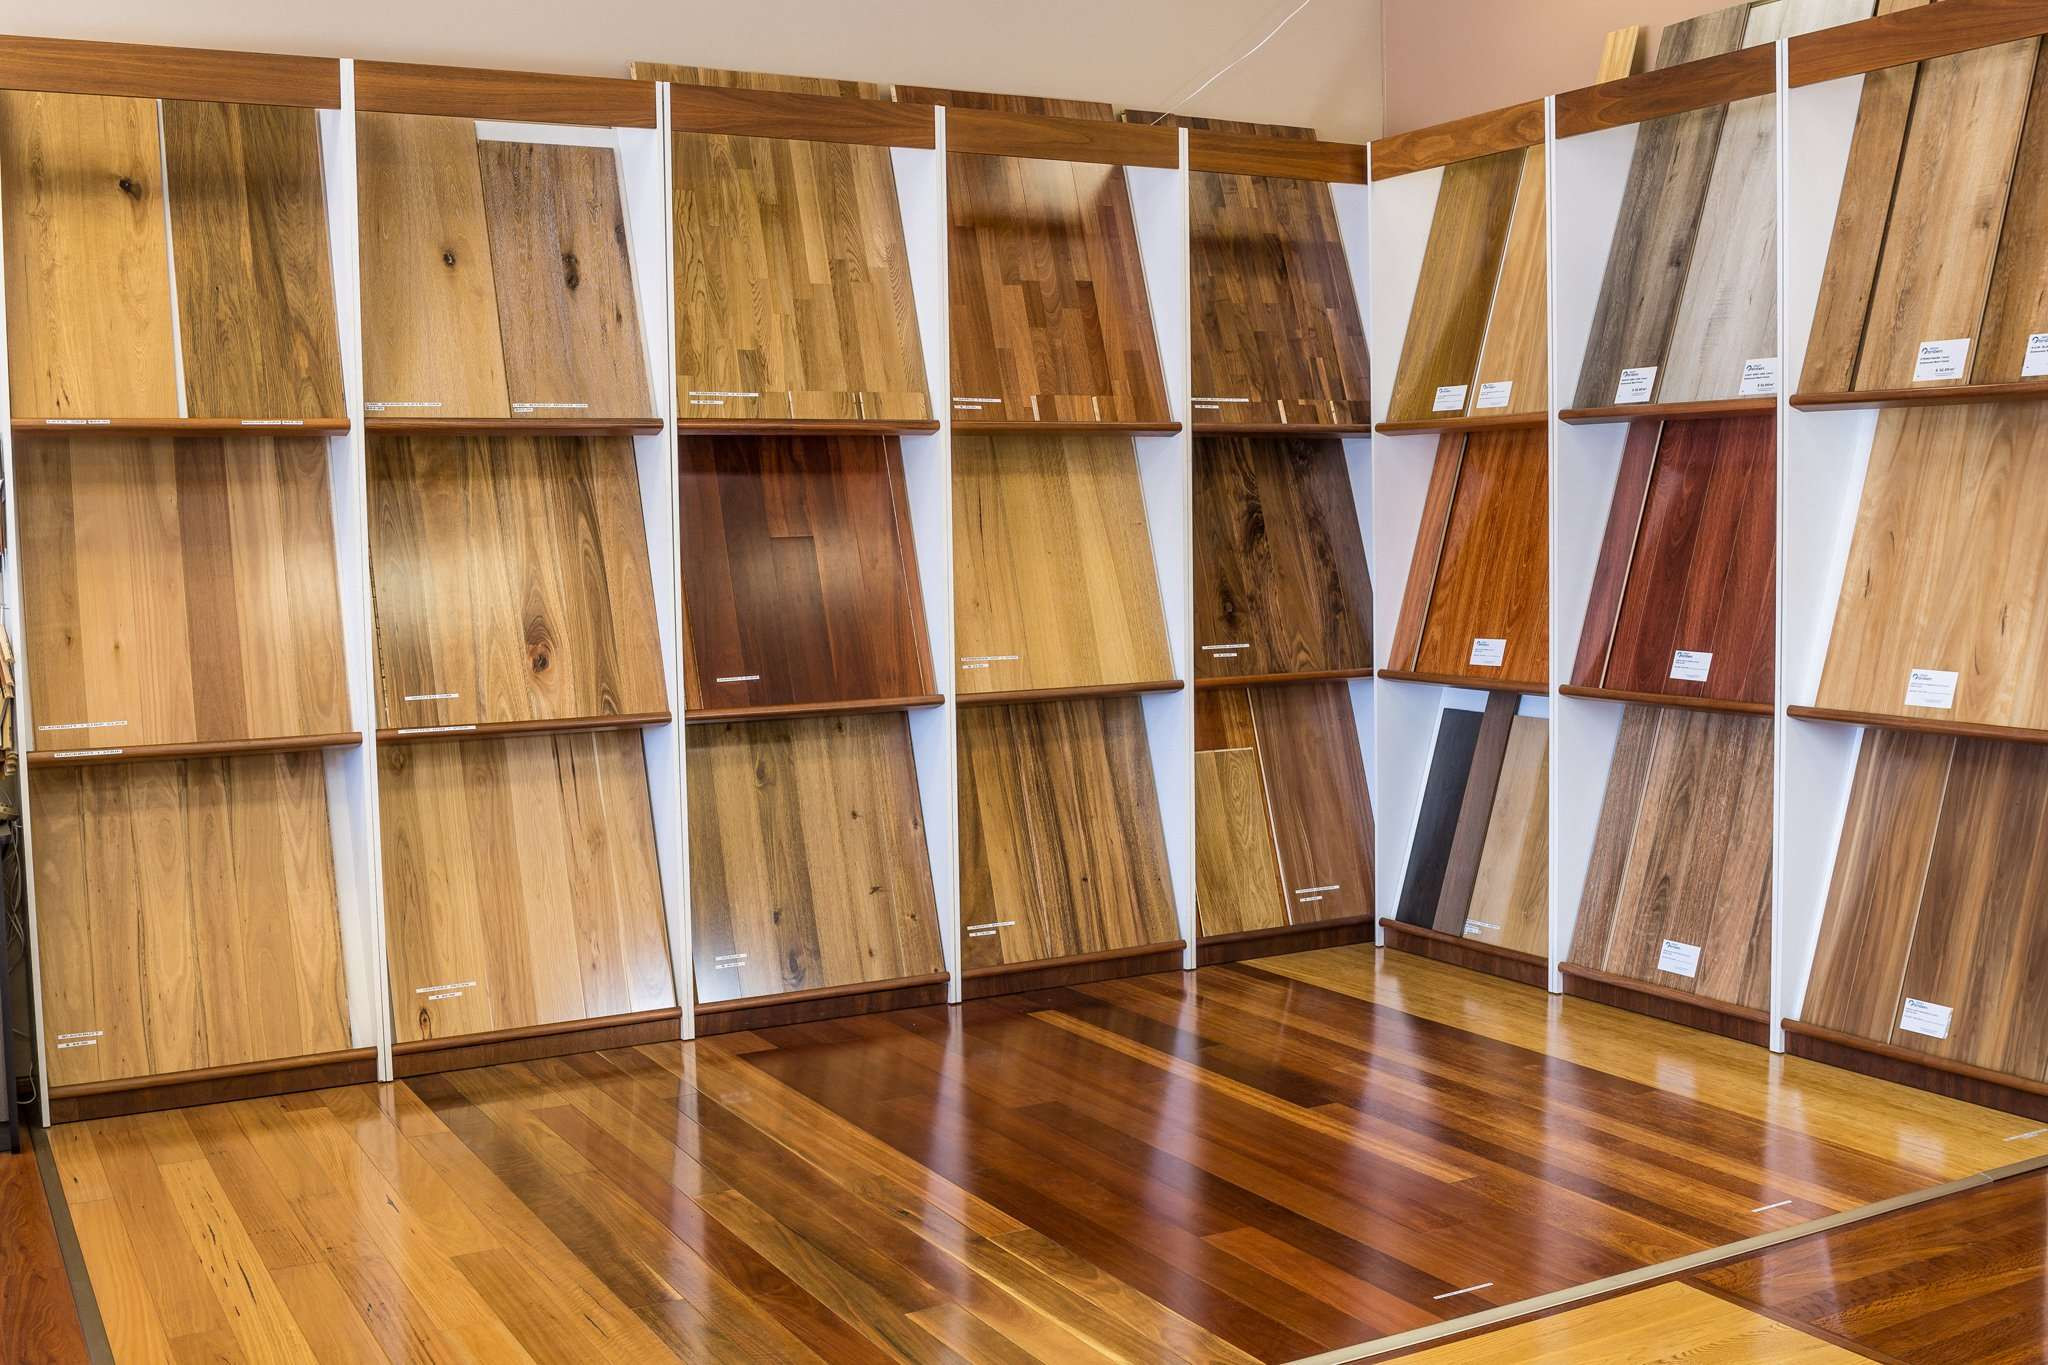 how much would it cost to lay hardwood floor of wood floor price lists a1 wood floors throughout 12mm laminate on sale 28 00 ma²